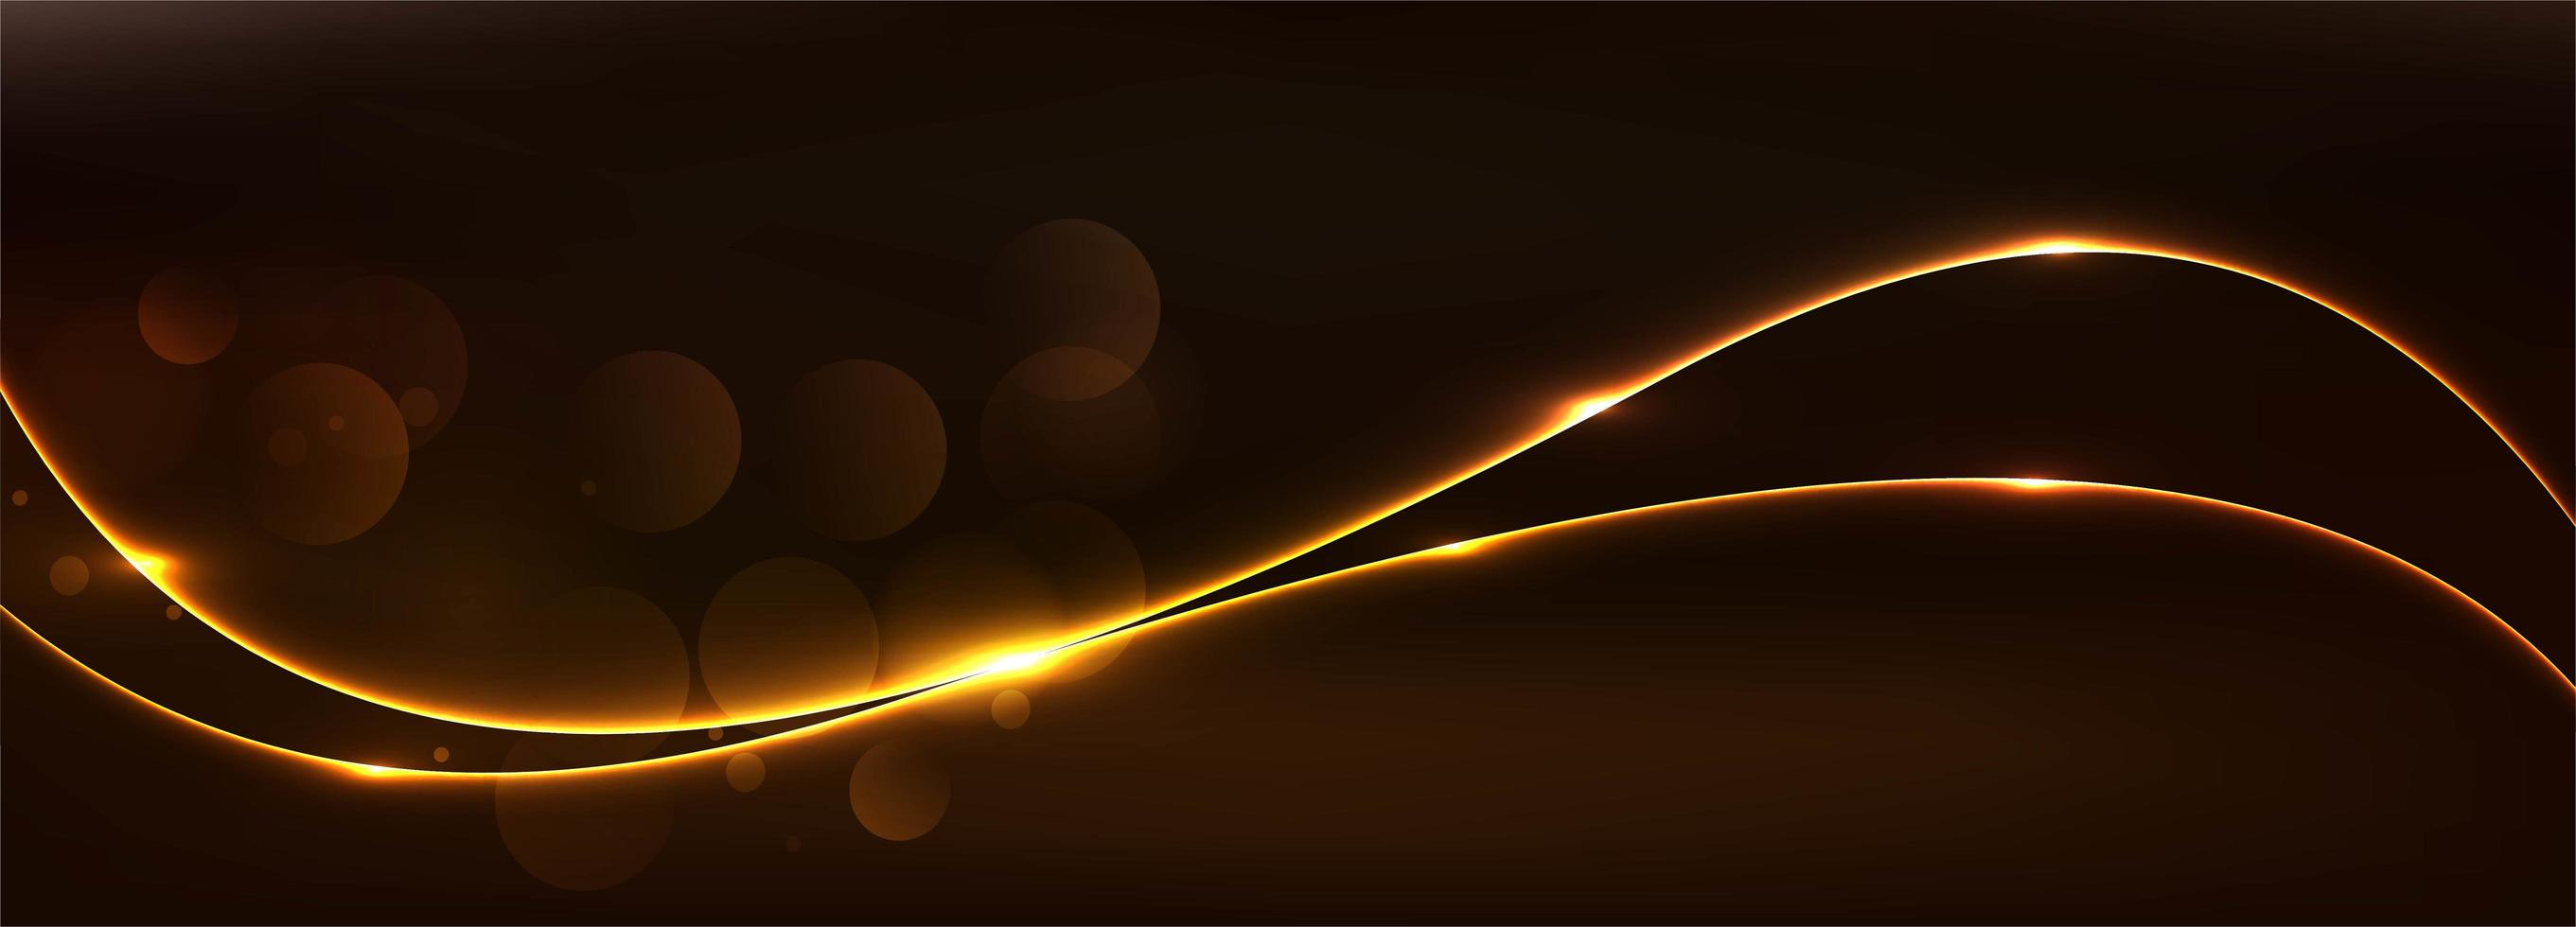 Abstract Golden Glowing Wave Banner vector